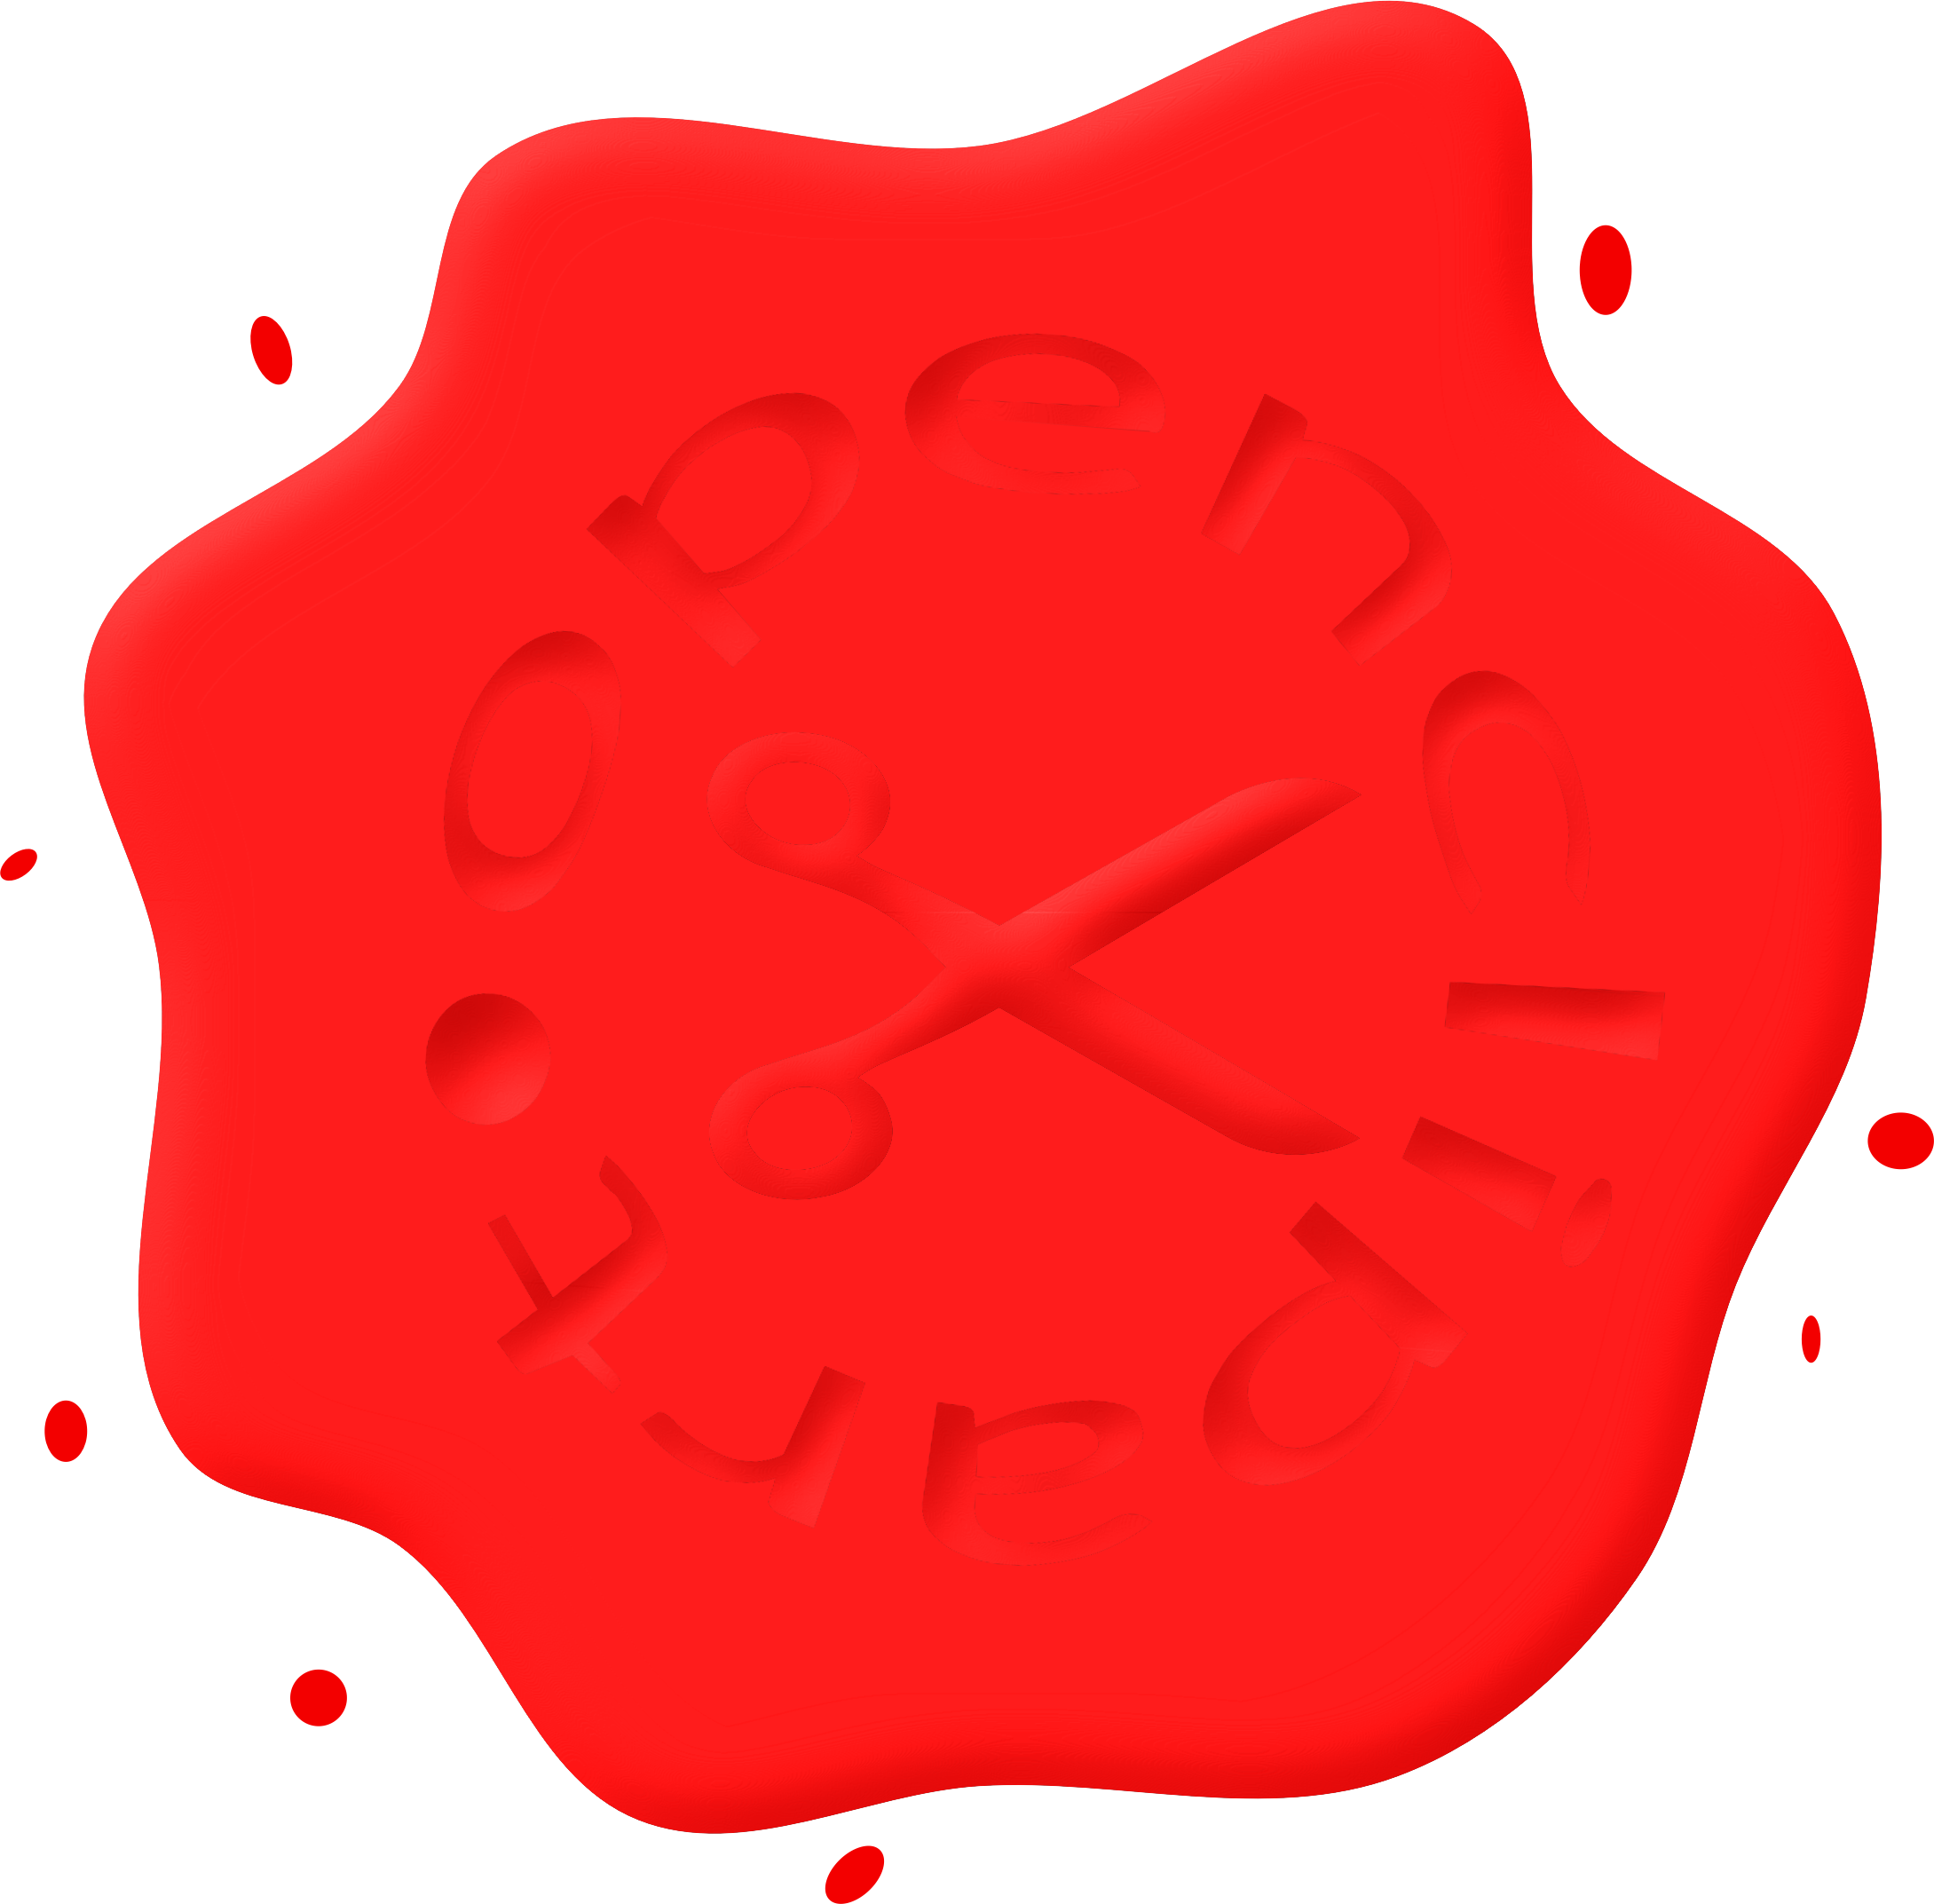 Wax seal png. Openclipart icons free and